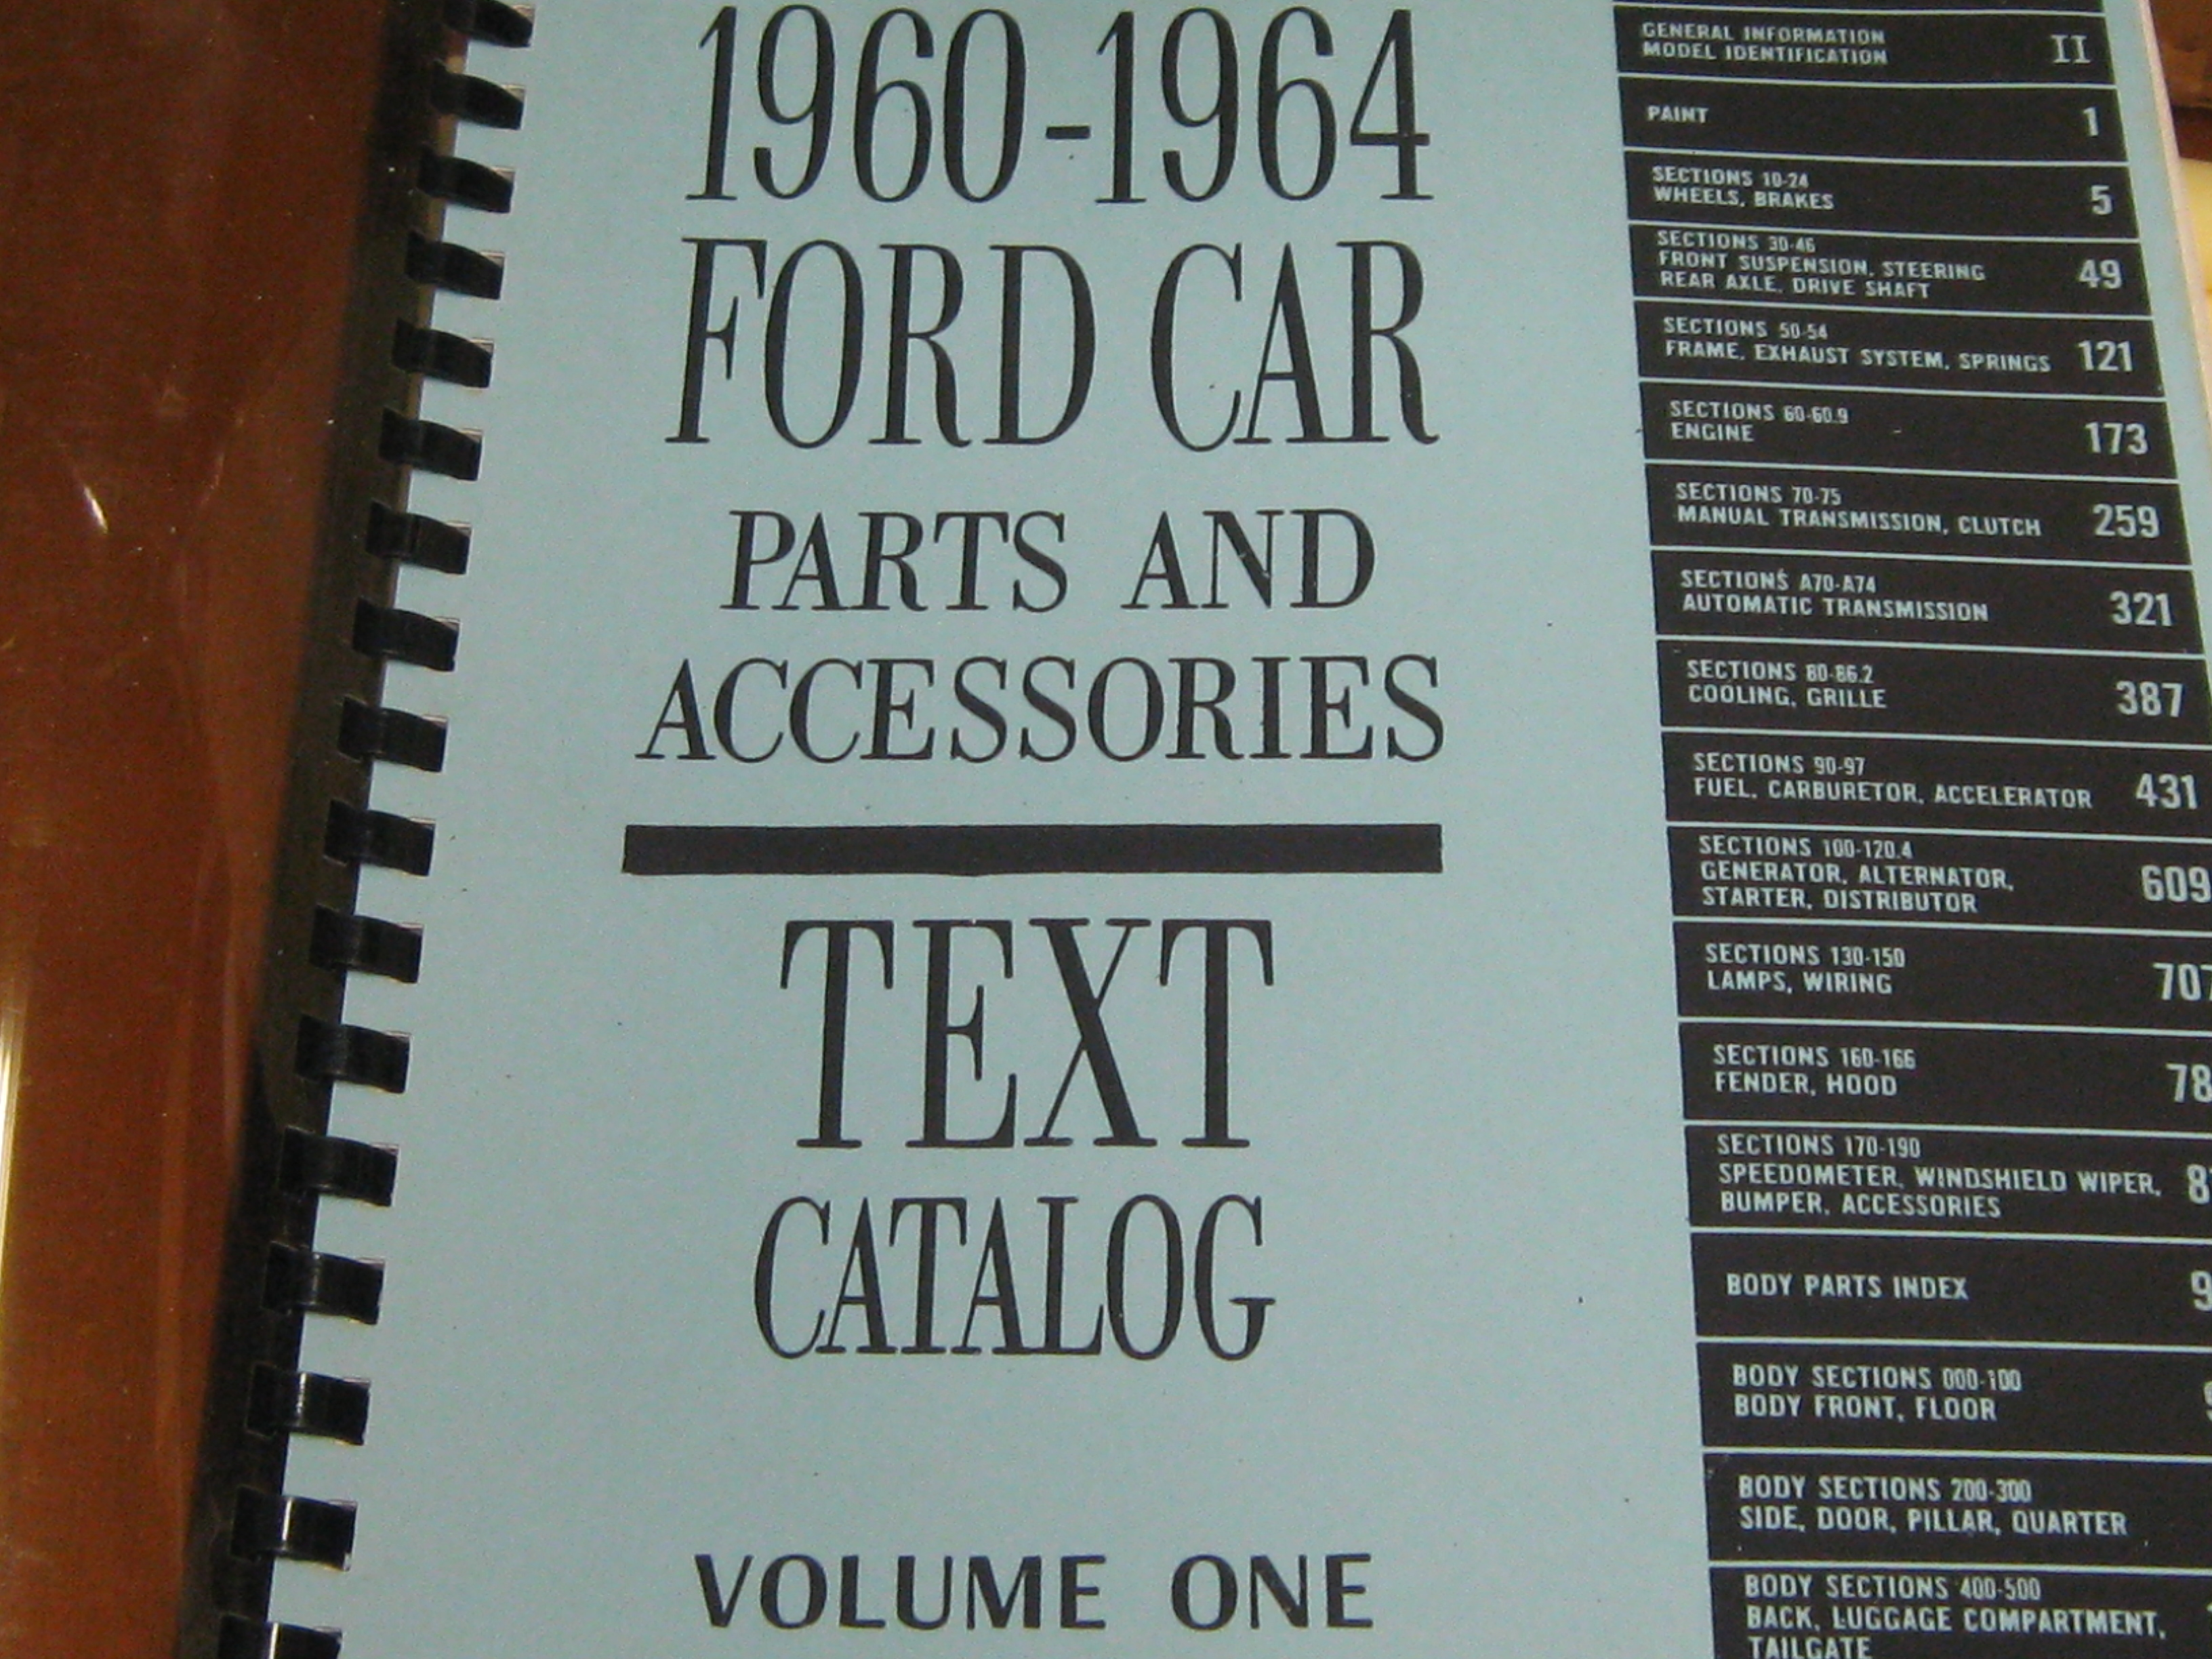 1960-1964 Ford Parts and Accessories Catalog , 2 Volume set